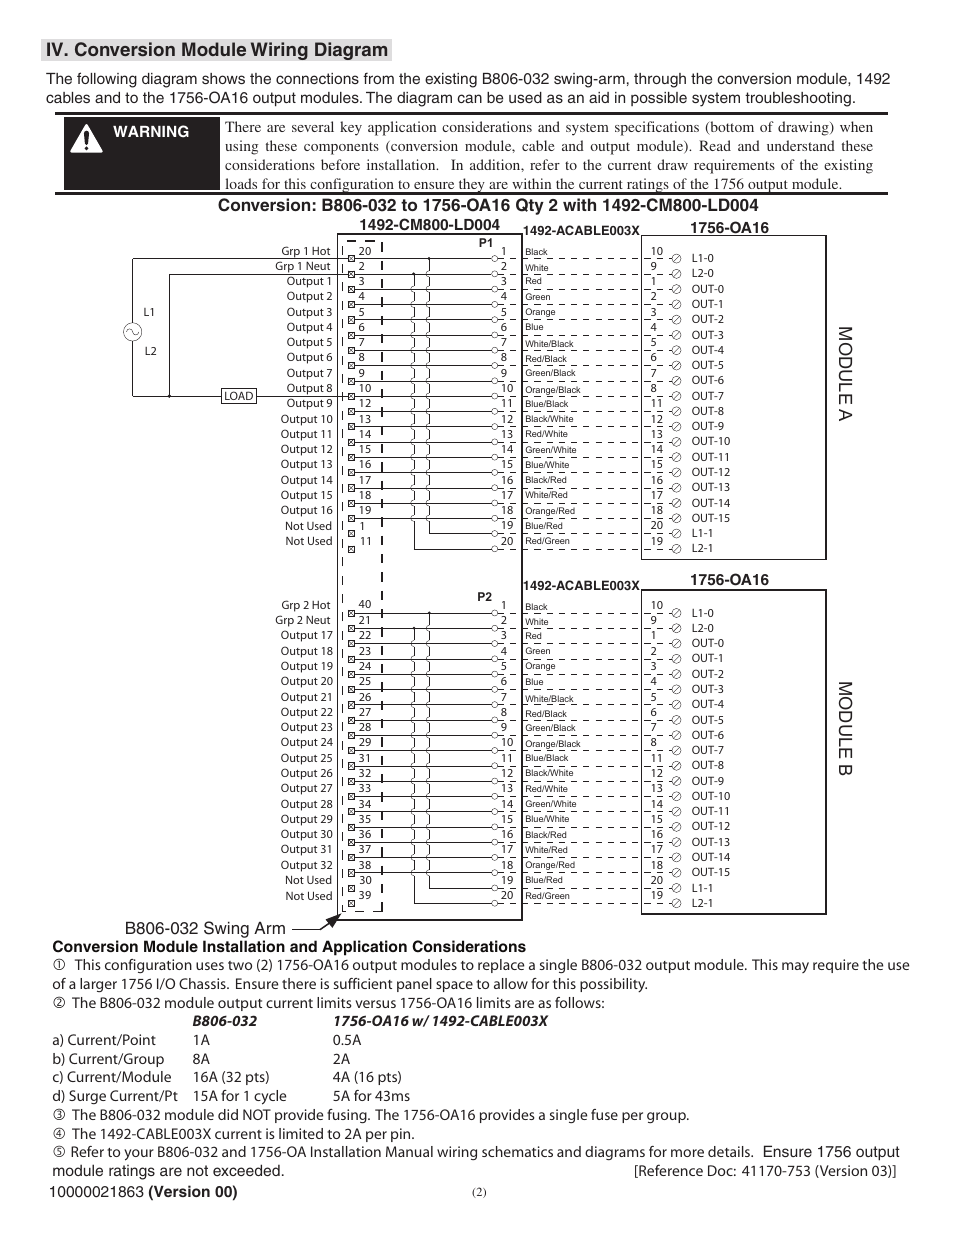 rockwell automation 1492 cm800 ld004 field wire conv module for modicon b806 032 to 1756 oa16 page2?resize\\\=665%2C861 hyosung gt250r wiring diagram beta wiring diagram, tomos wiring garelli wiring diagram at honlapkeszites.co